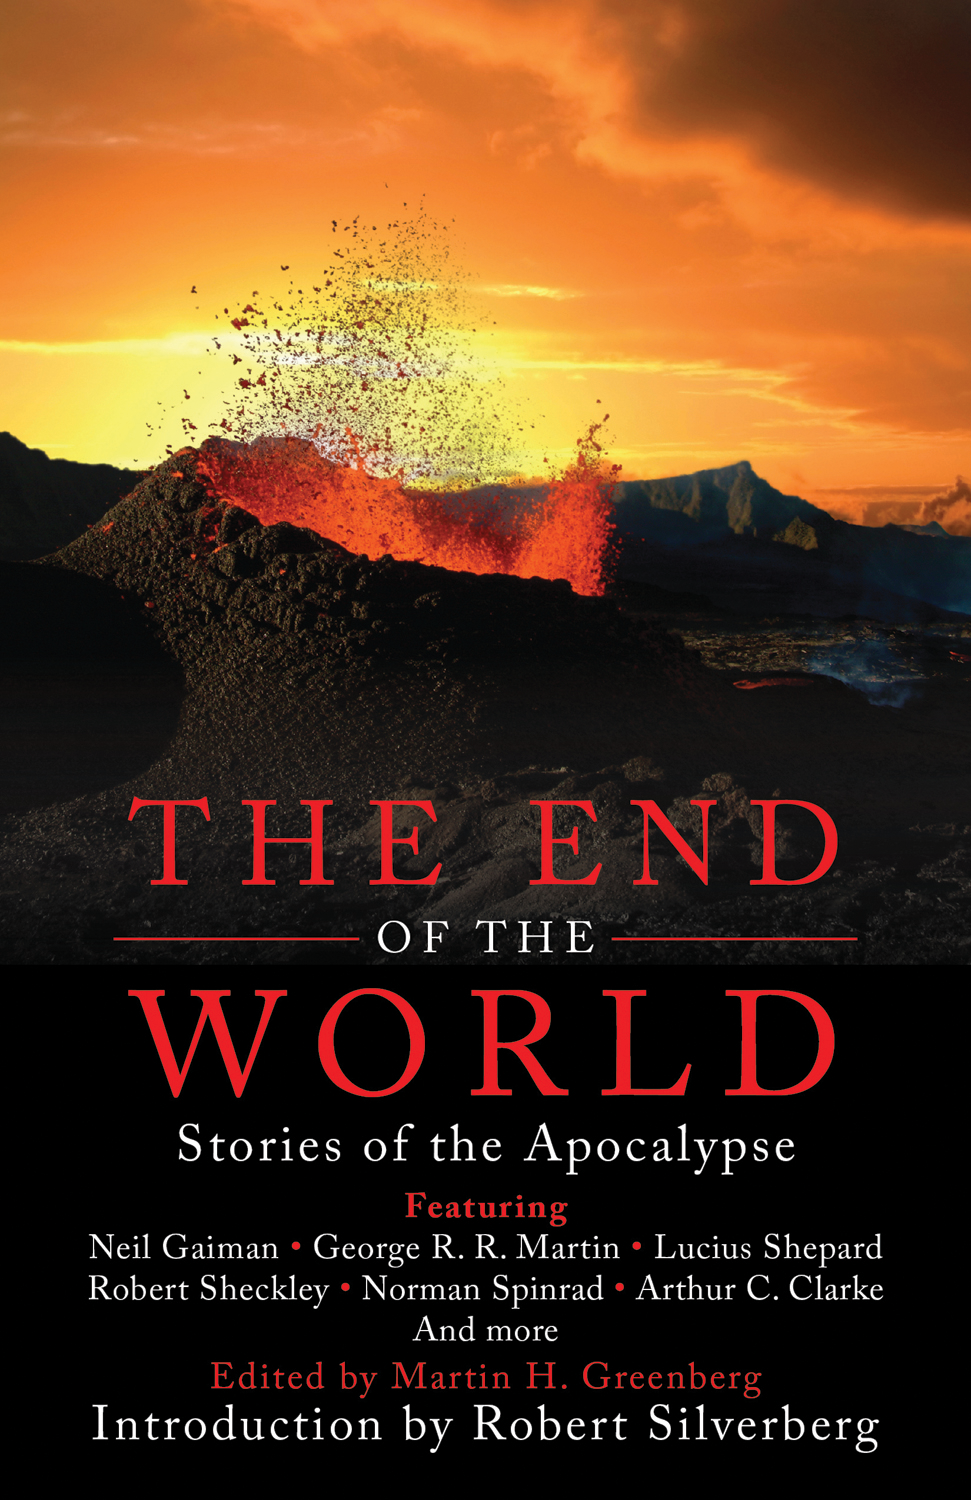 The End Of The World: Stories of the Apocalypse By: Martin H. Greenberg, Robert Silverberg